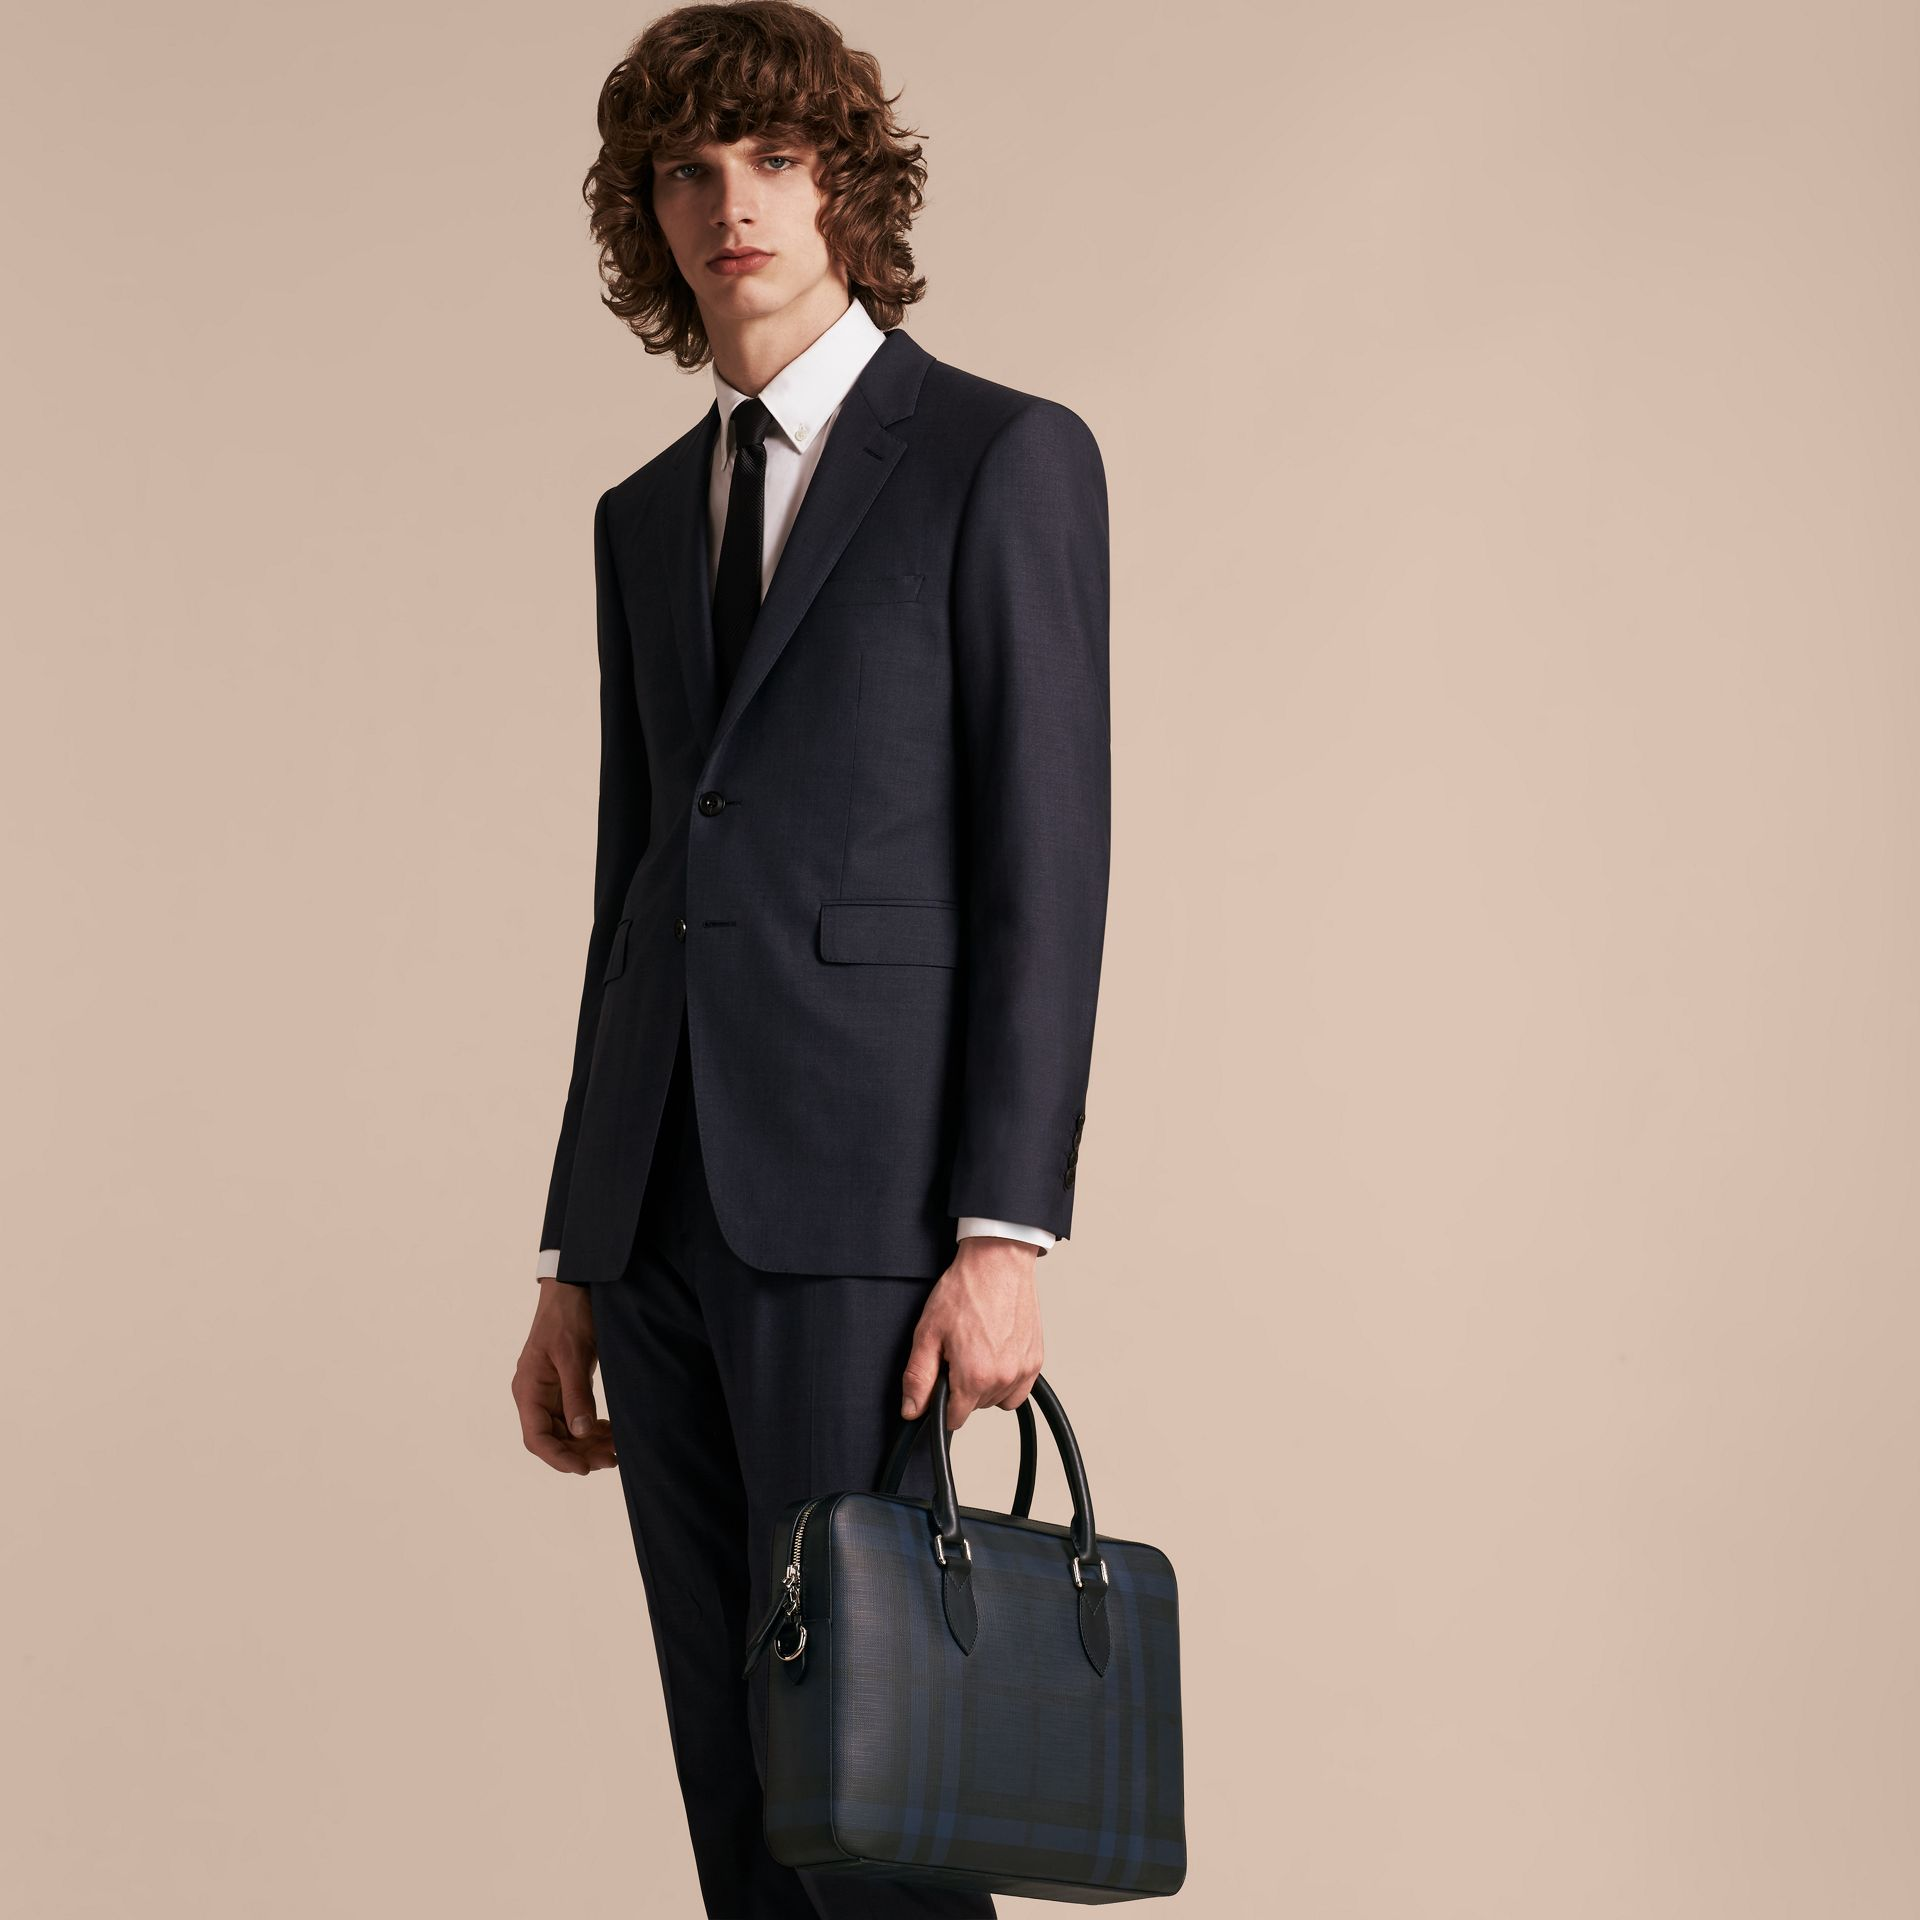 Medium Leather Trim London Check Briefcase in Navy/black - Men | Burberry United Kingdom - gallery image 3